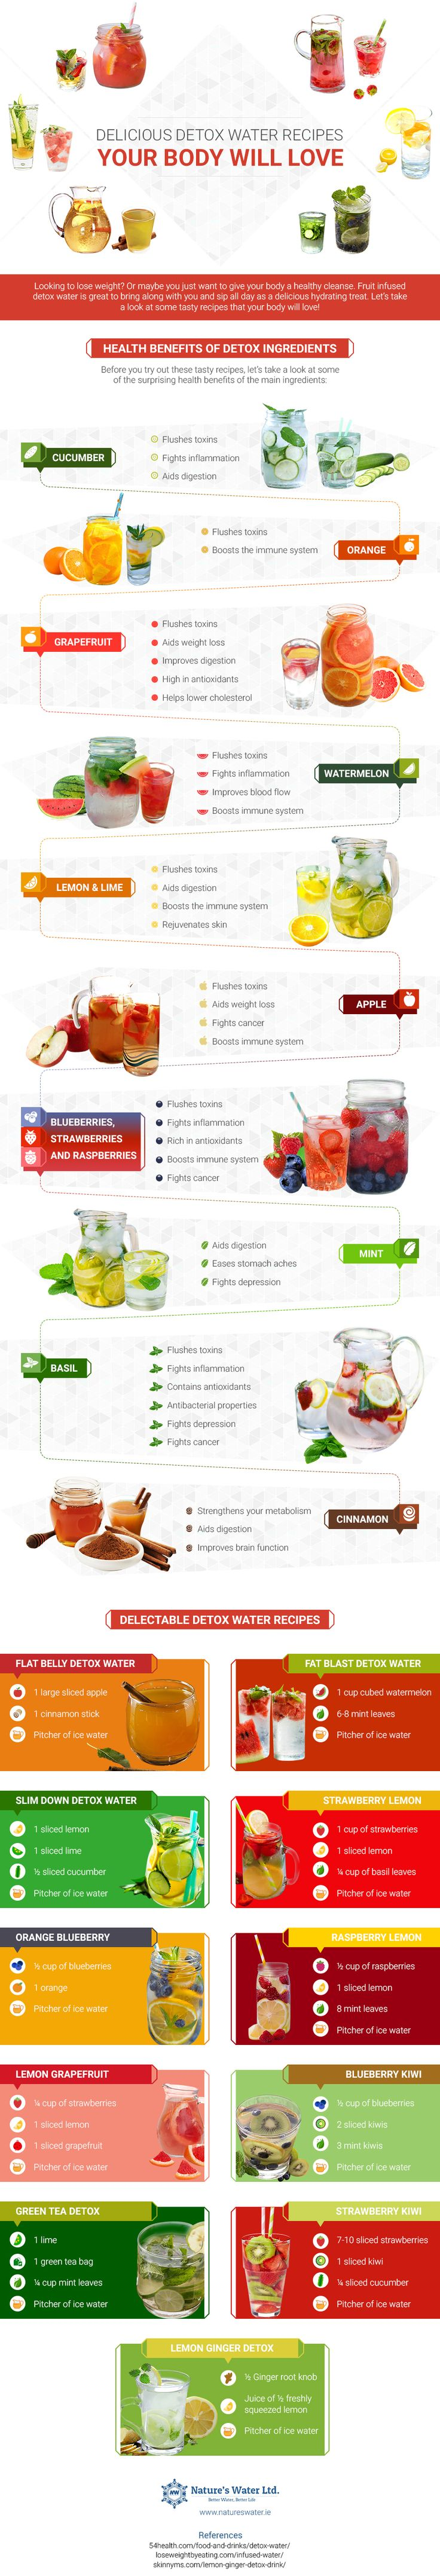 1.8Kshares 106Facebook 2Twitter 1.7KPinterestBy Nature's Water Looking to detox and lose weight? Or maybe you just want to give your body a healthy cleanse? Fruit infused detox water is great to bring along with you and sip all day as a delicious hydrating treat. Let's take a look at some tasty recipes that your body …